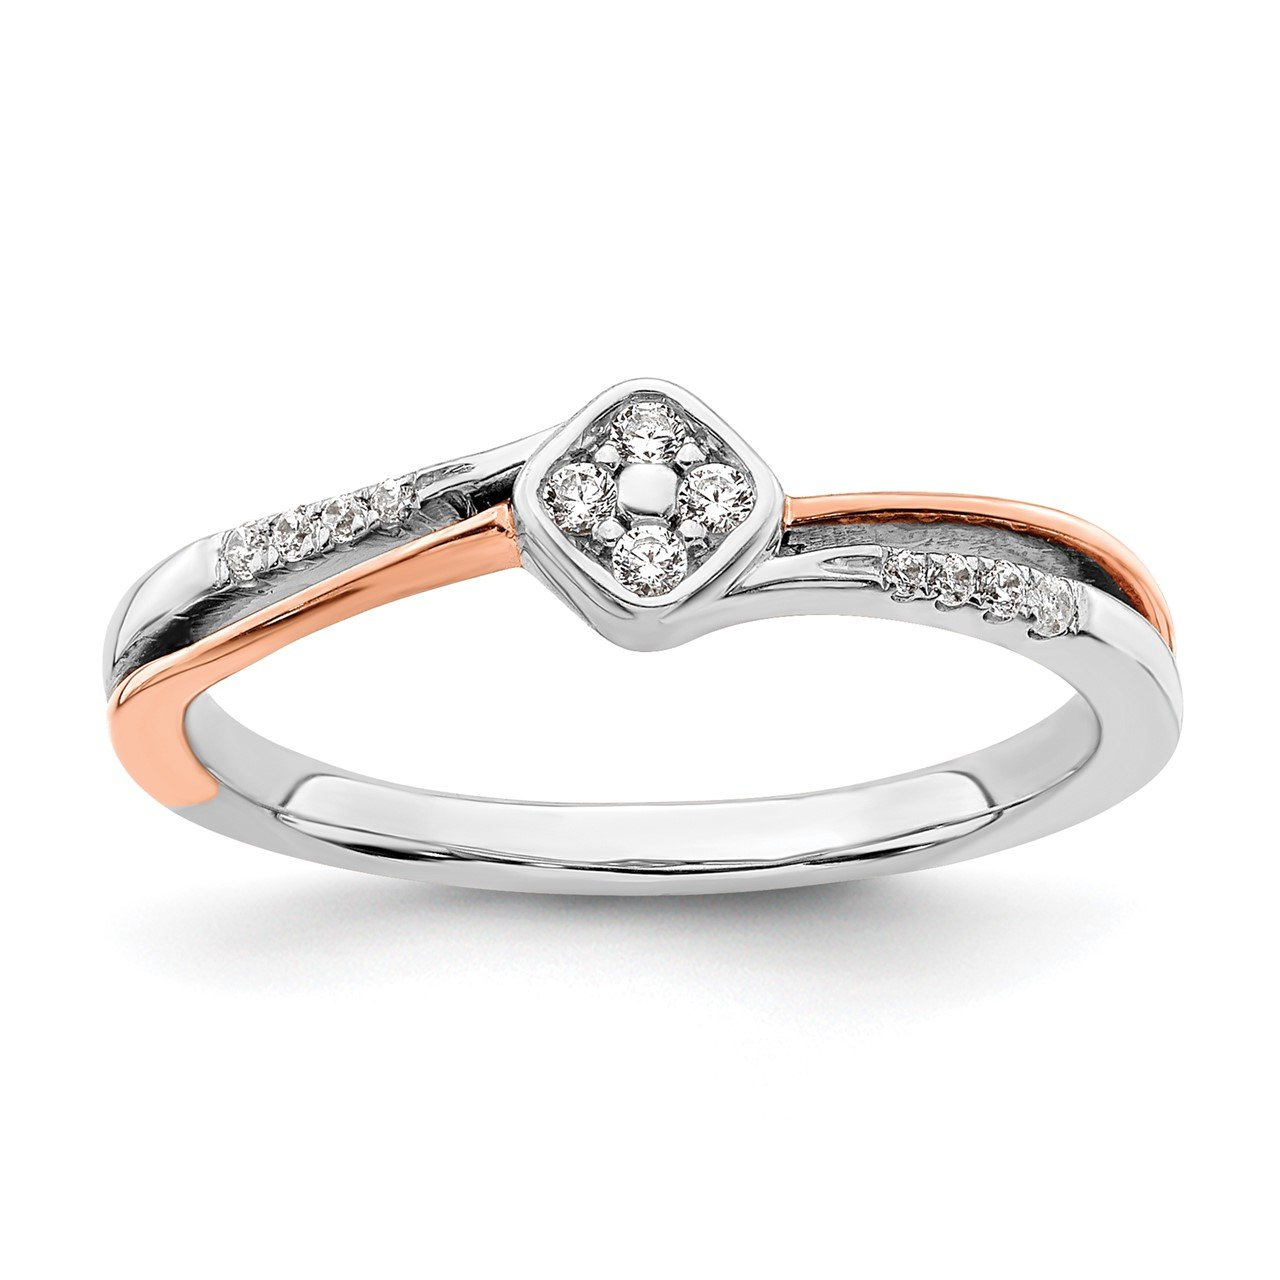 14k White and Rose Gold Complete Square Cluster Dia. Promise Ring